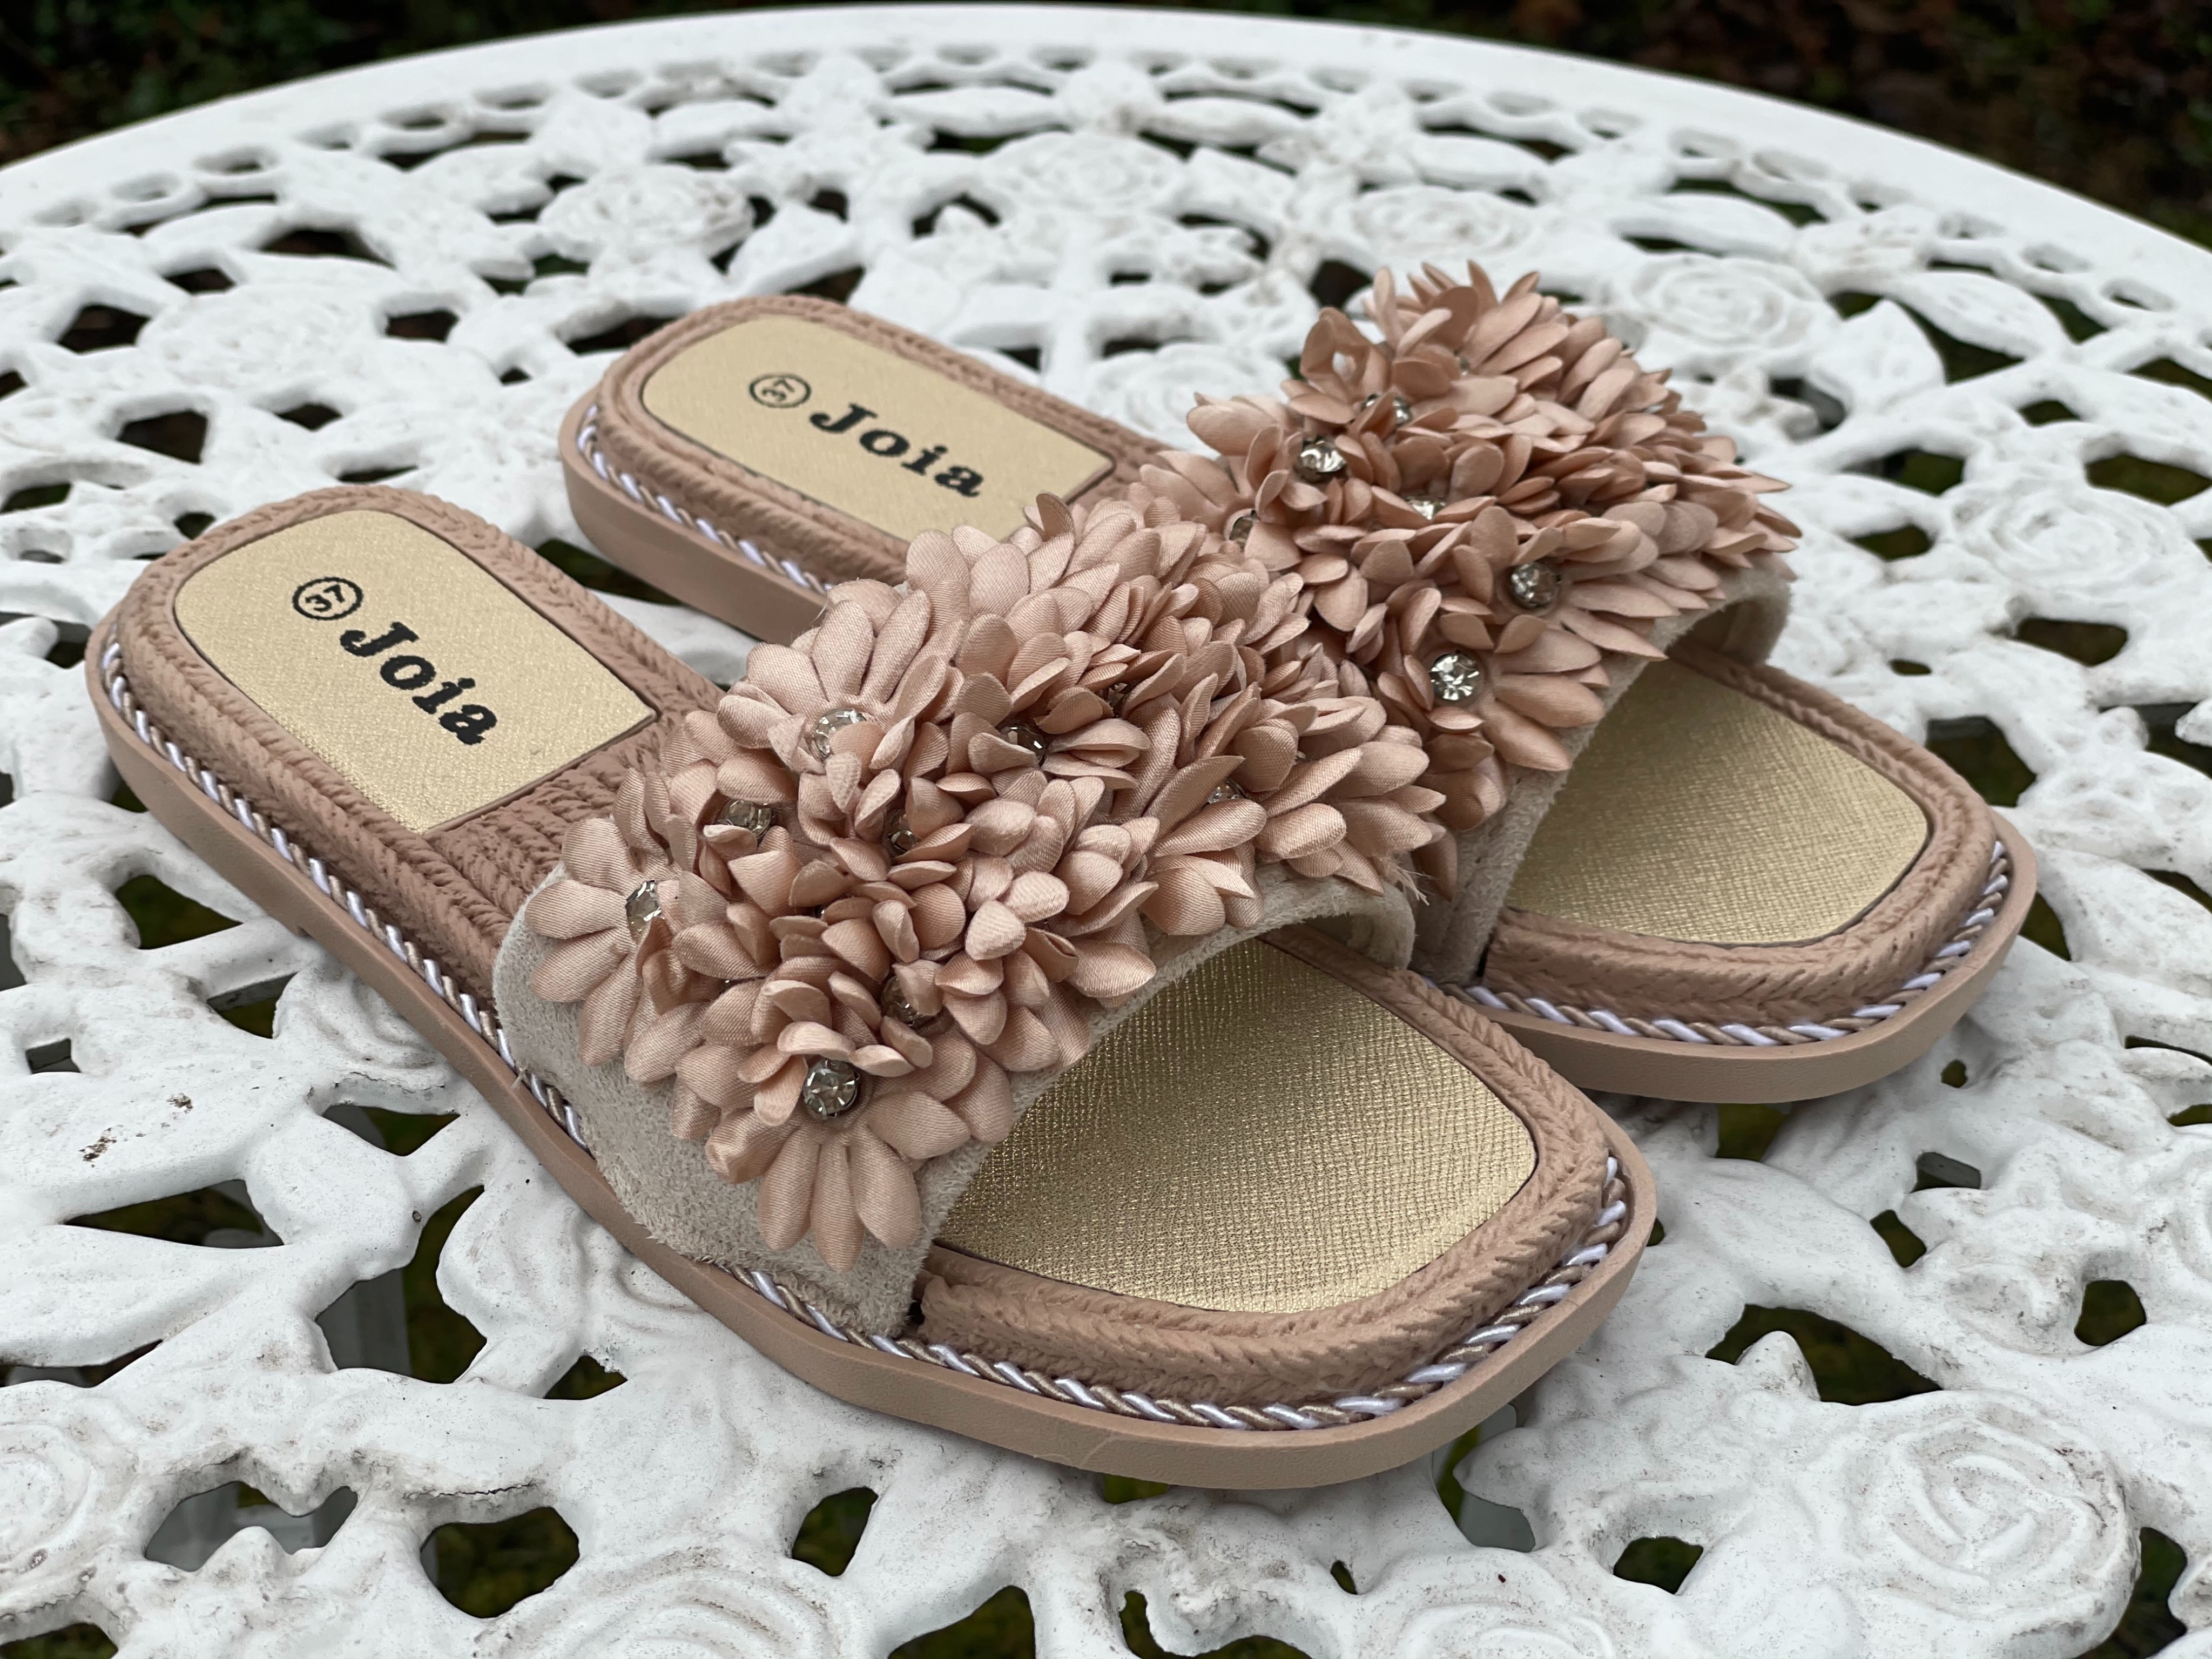 Train of trend, Sandaler med blommor - Beige